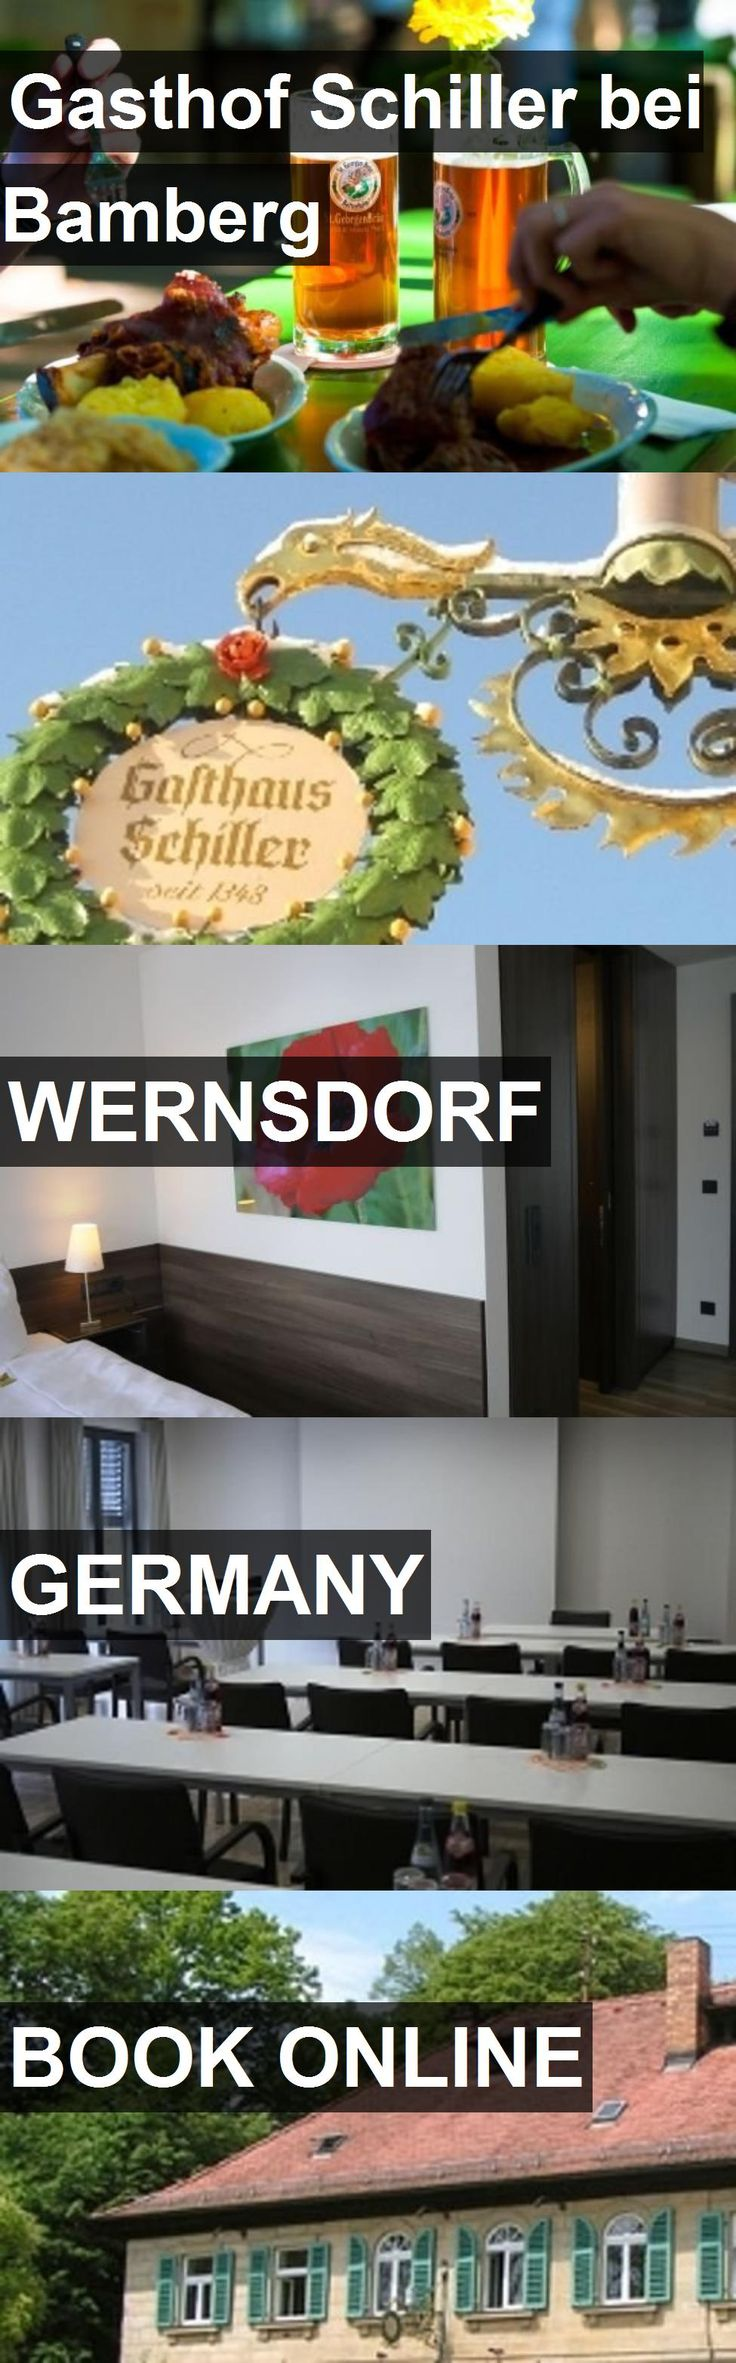 Hotel Gasthof Schiller bei Bamberg in Wernsdorf, Germany. For more information, photos, reviews and best prices please follow the link. #Germany #Wernsdorf #GasthofSchillerbeiBamberg #hotel #travel #vacation